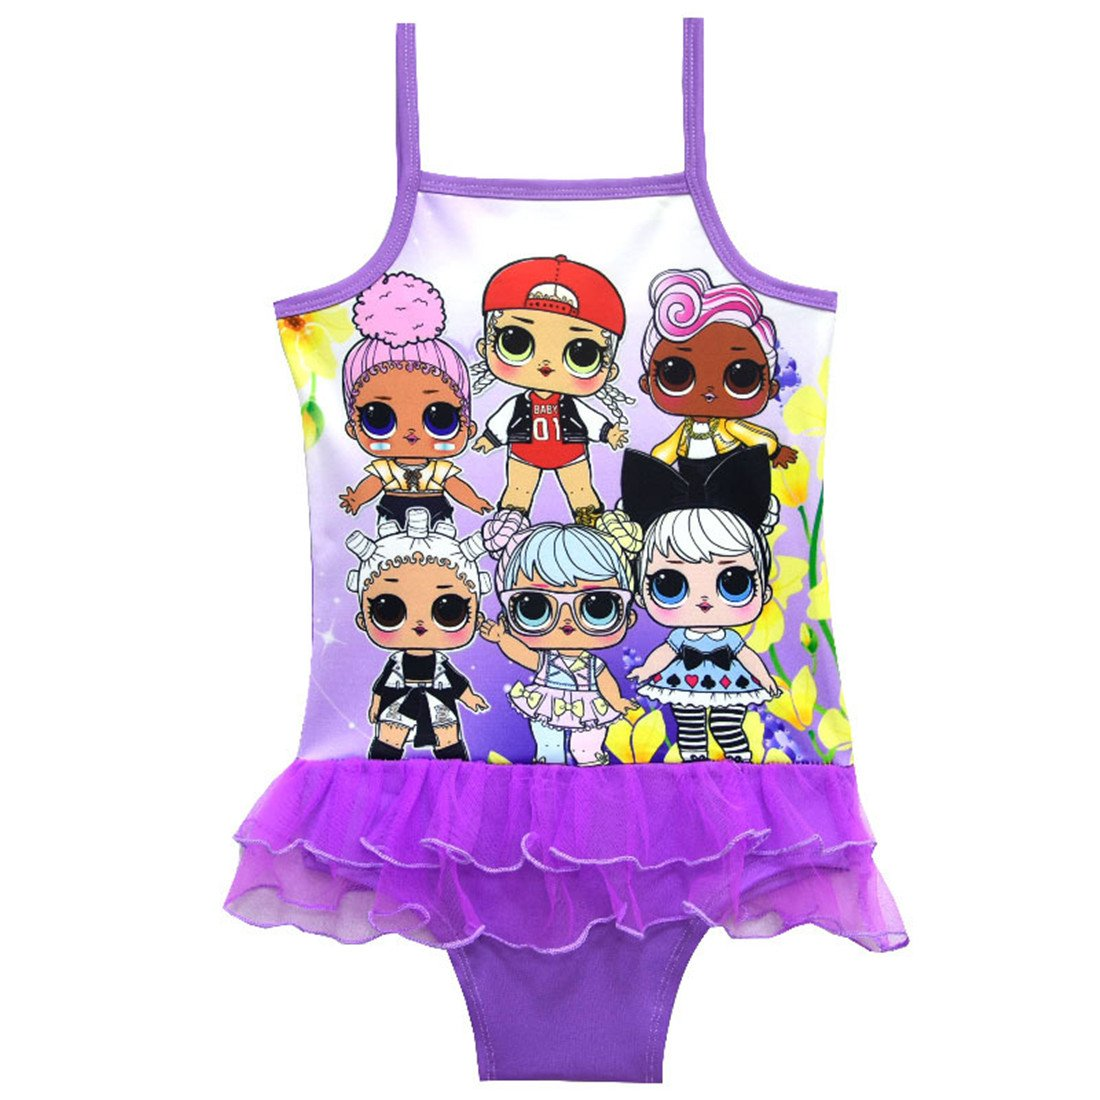 Dgfstm Baby Girls Cartoon Swimsuit Bathing Suit Adventure Outfit One Piece